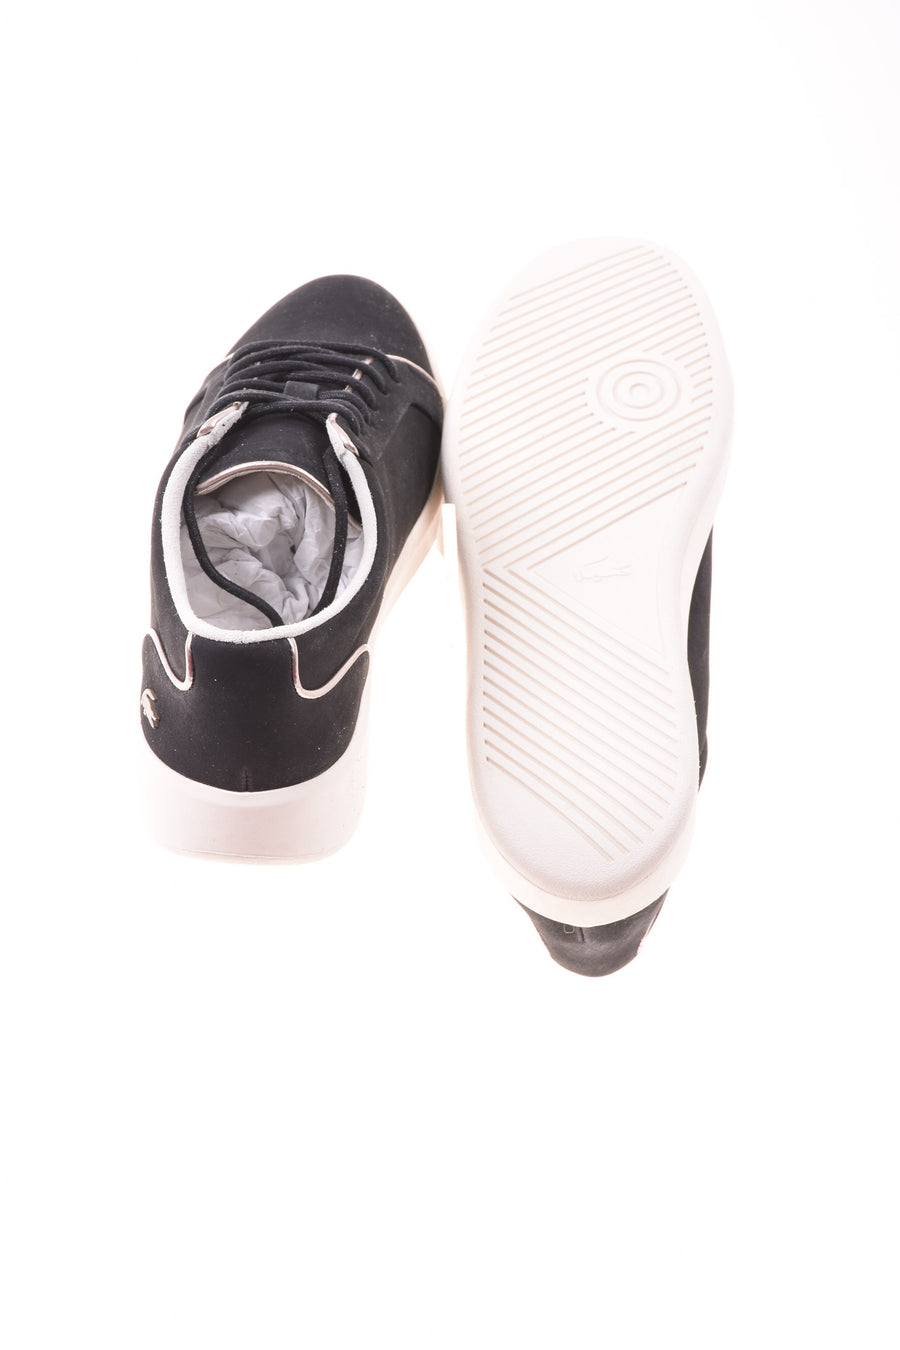 USED Lacoste Women's Shoes 6 Black